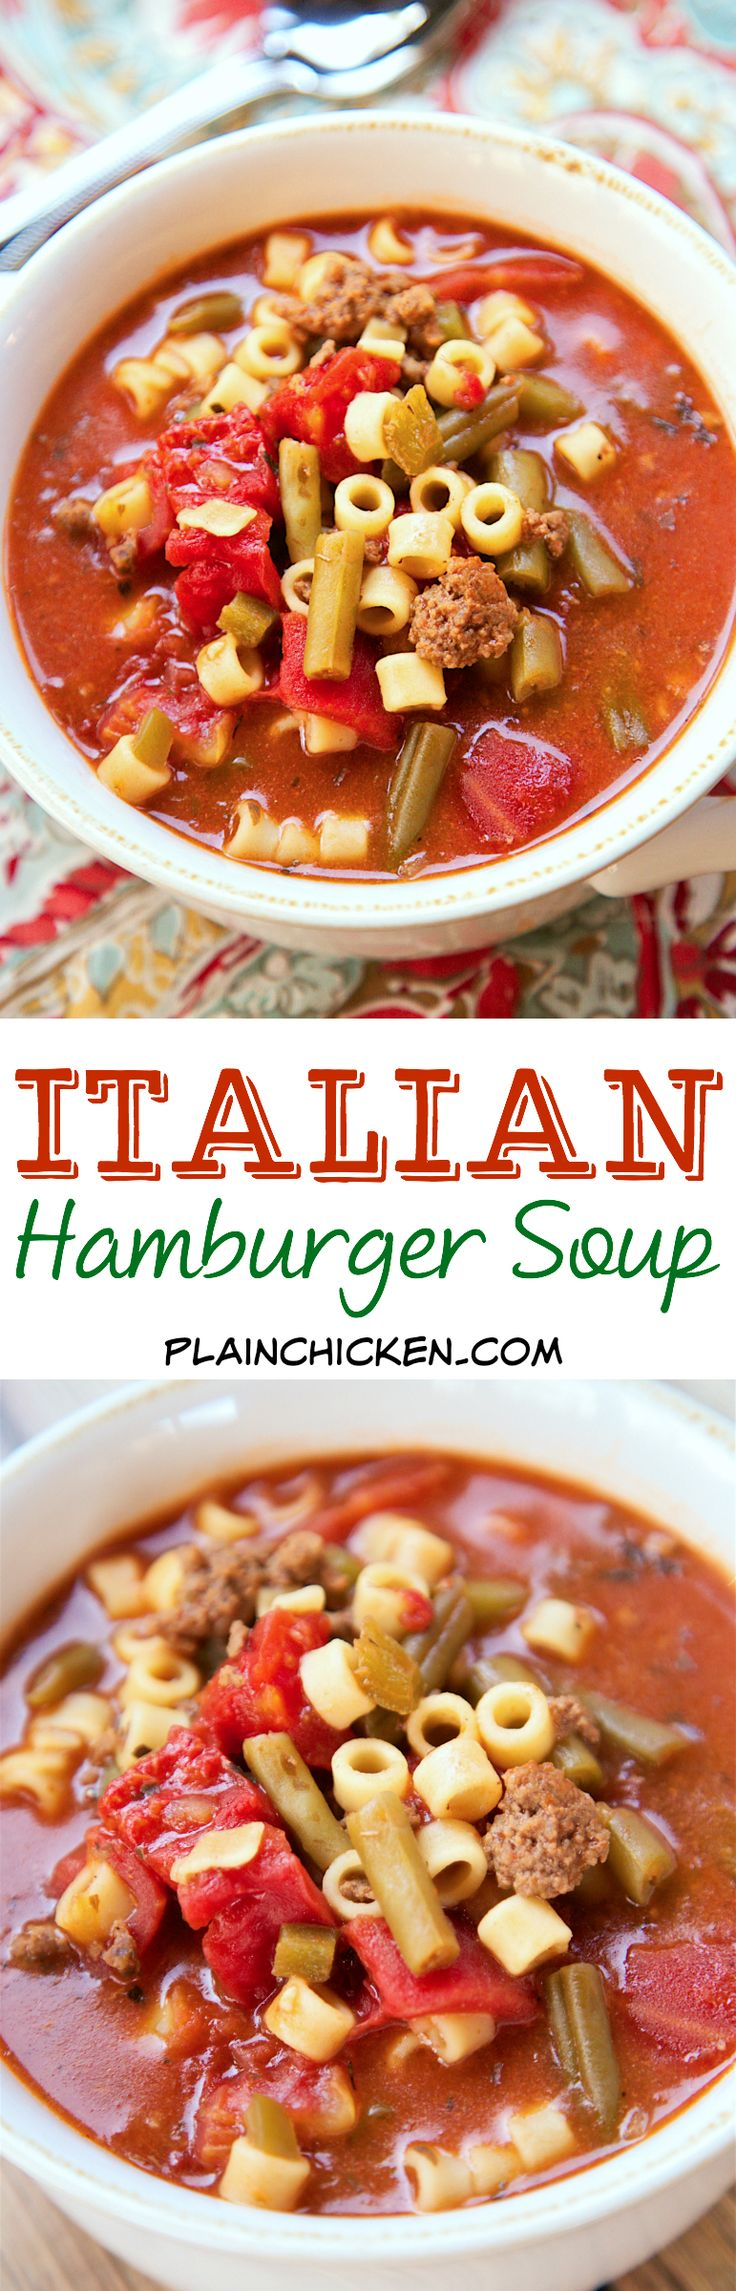 Italian Hamburger Soup - ground beef, peppers, stewed tomatoes, green beans, tomato sauce, oregano, basil and pasta - SO good! We ate this two days in a row. Makes a ton - freezes well.